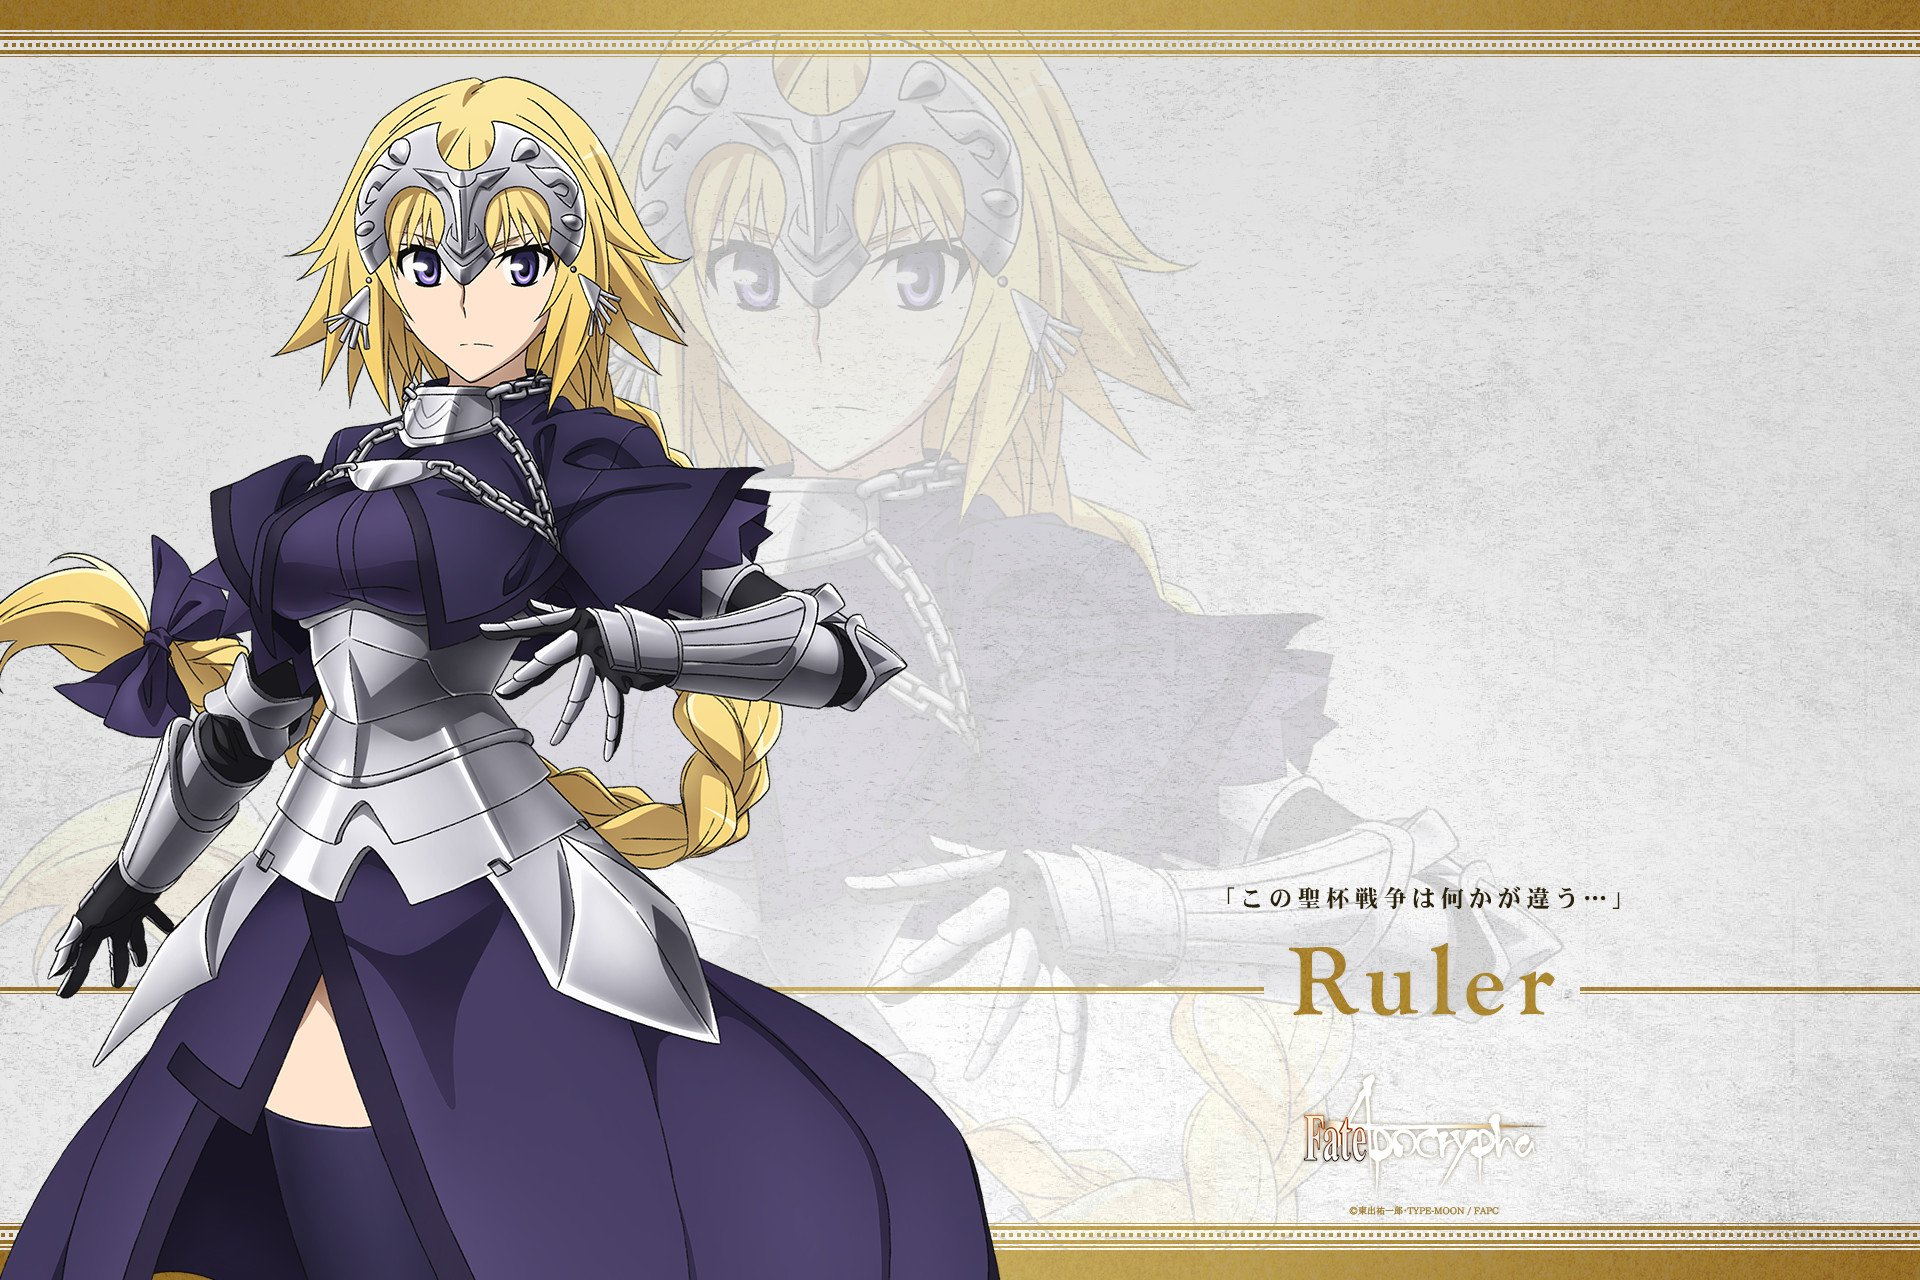 Anime - Fate/Apocrypha Ruler (Fate/Apocrypha) Wallpaper